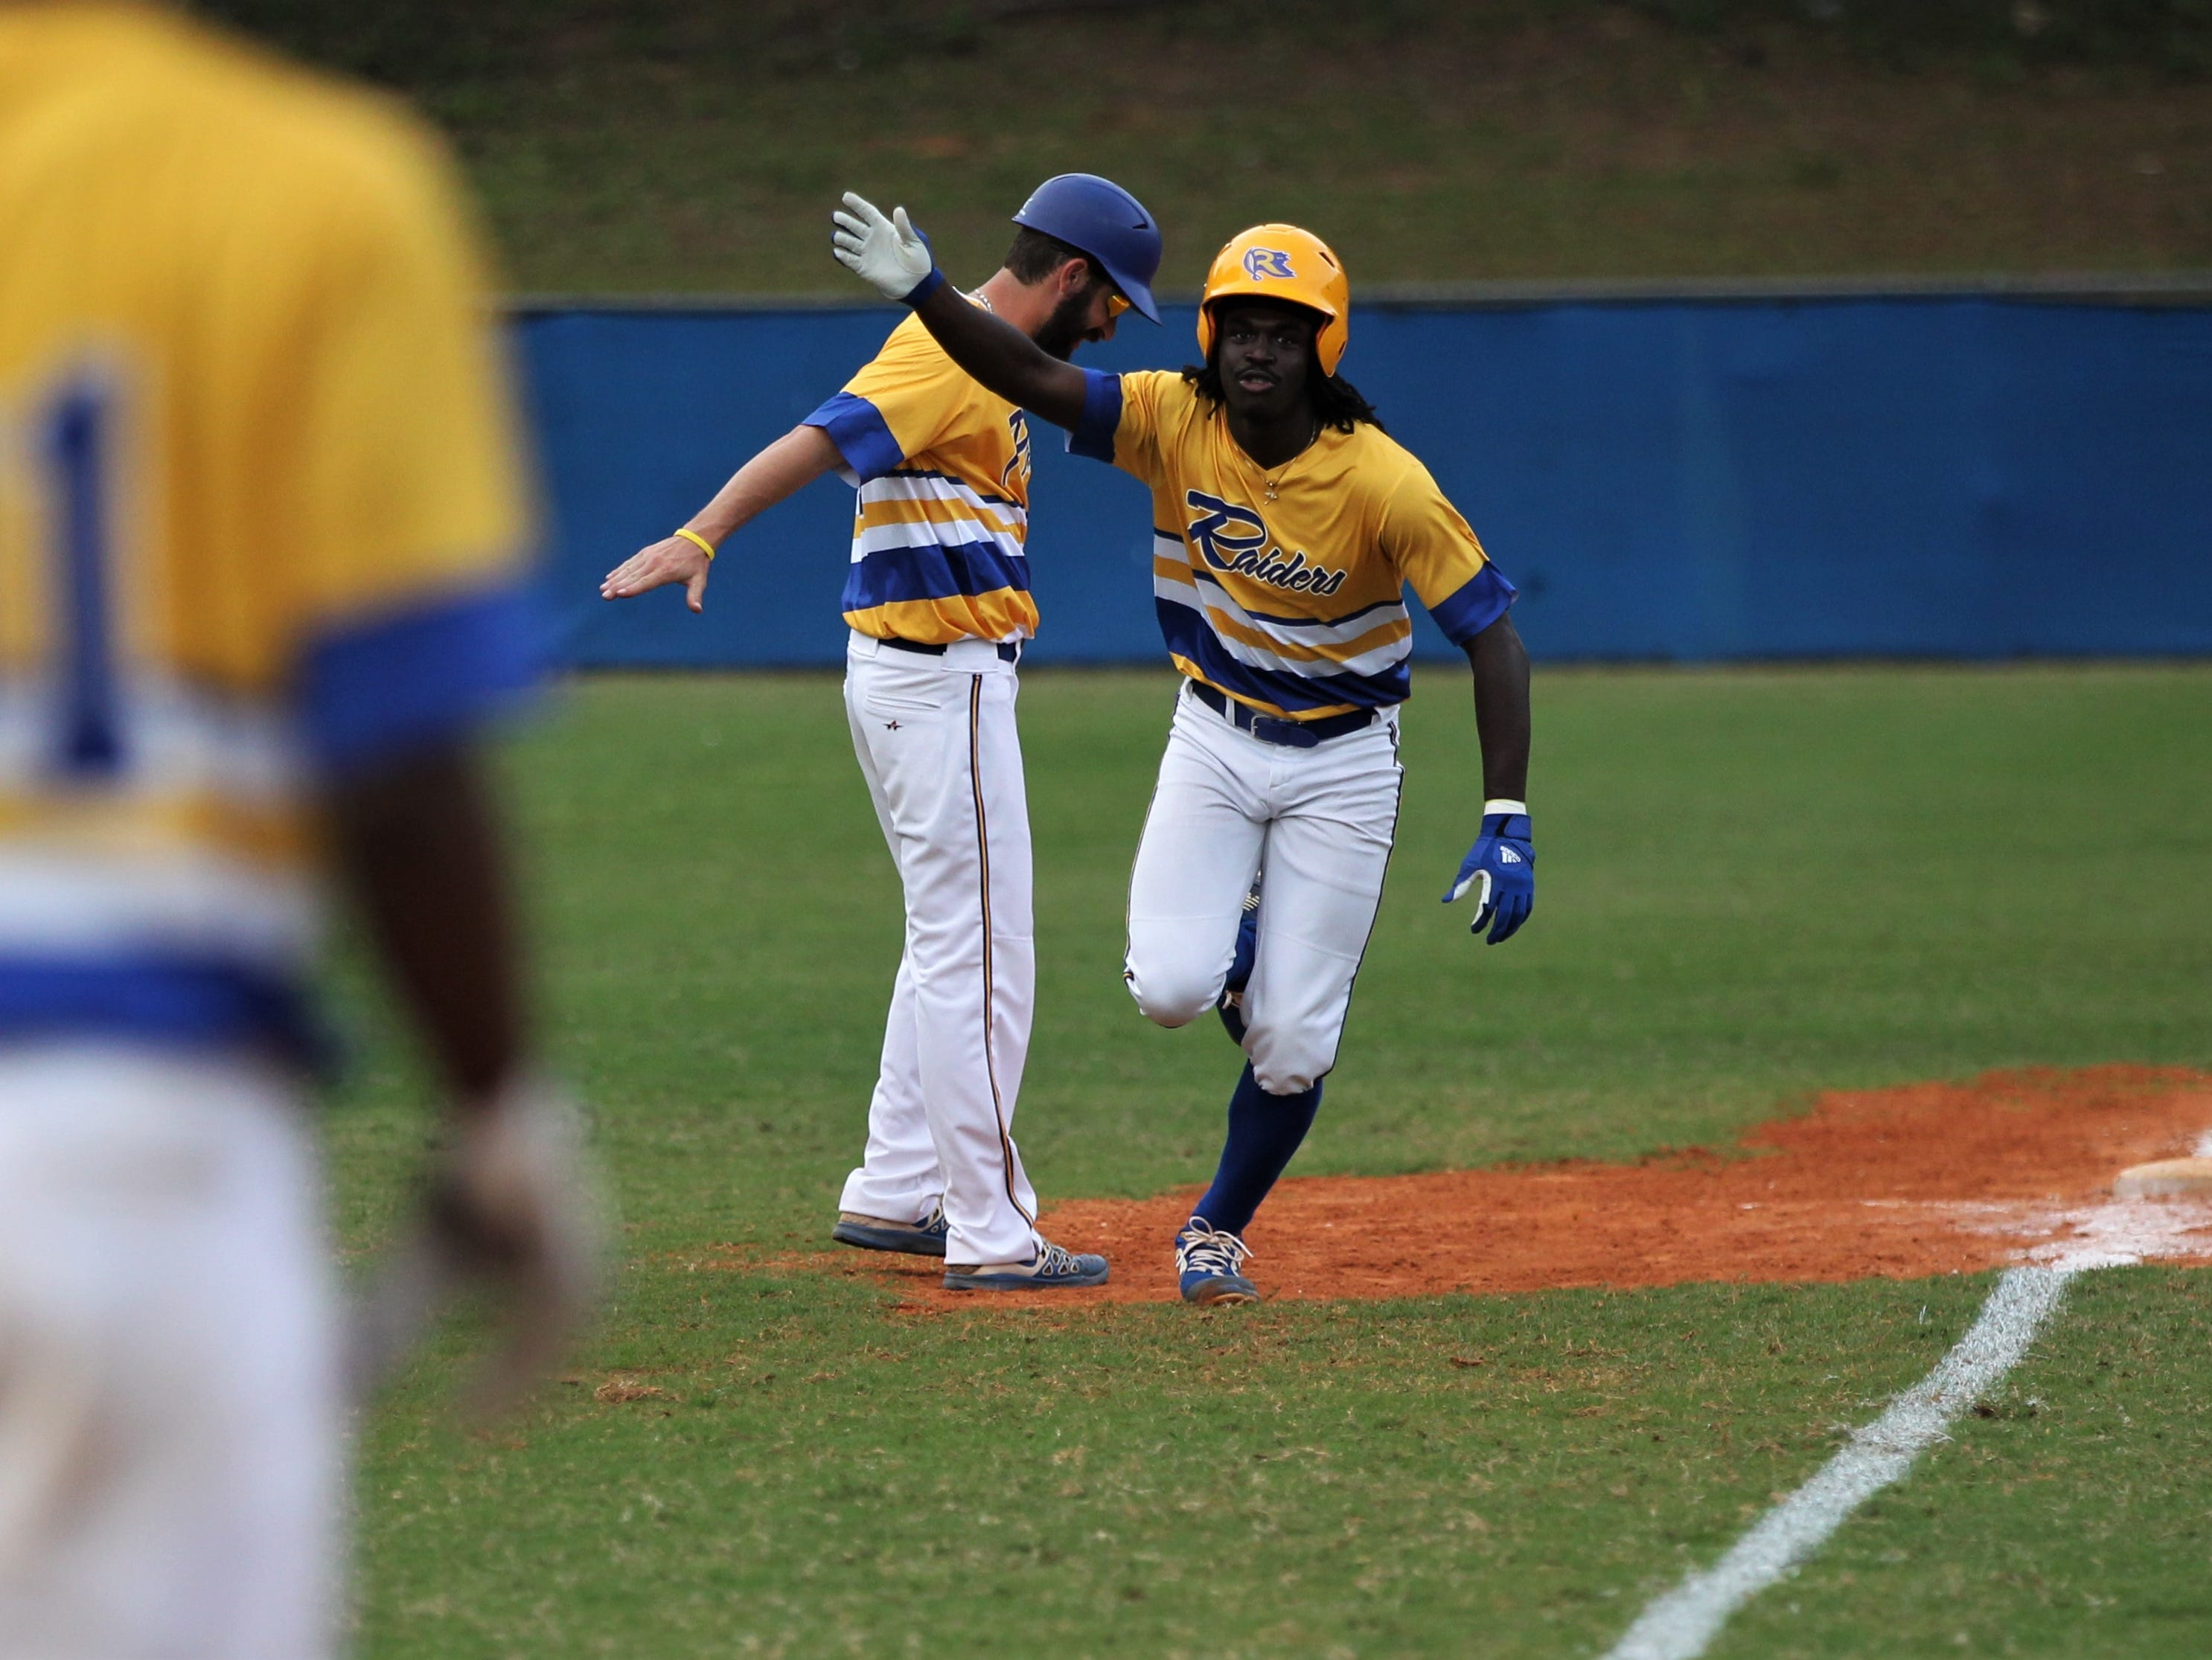 Rickards sophomore Kaleb Henry gets congratulated after a two-run home run as Rickards beat Gadsden County 18-0 in three innings on Friday, April 12, 2019.